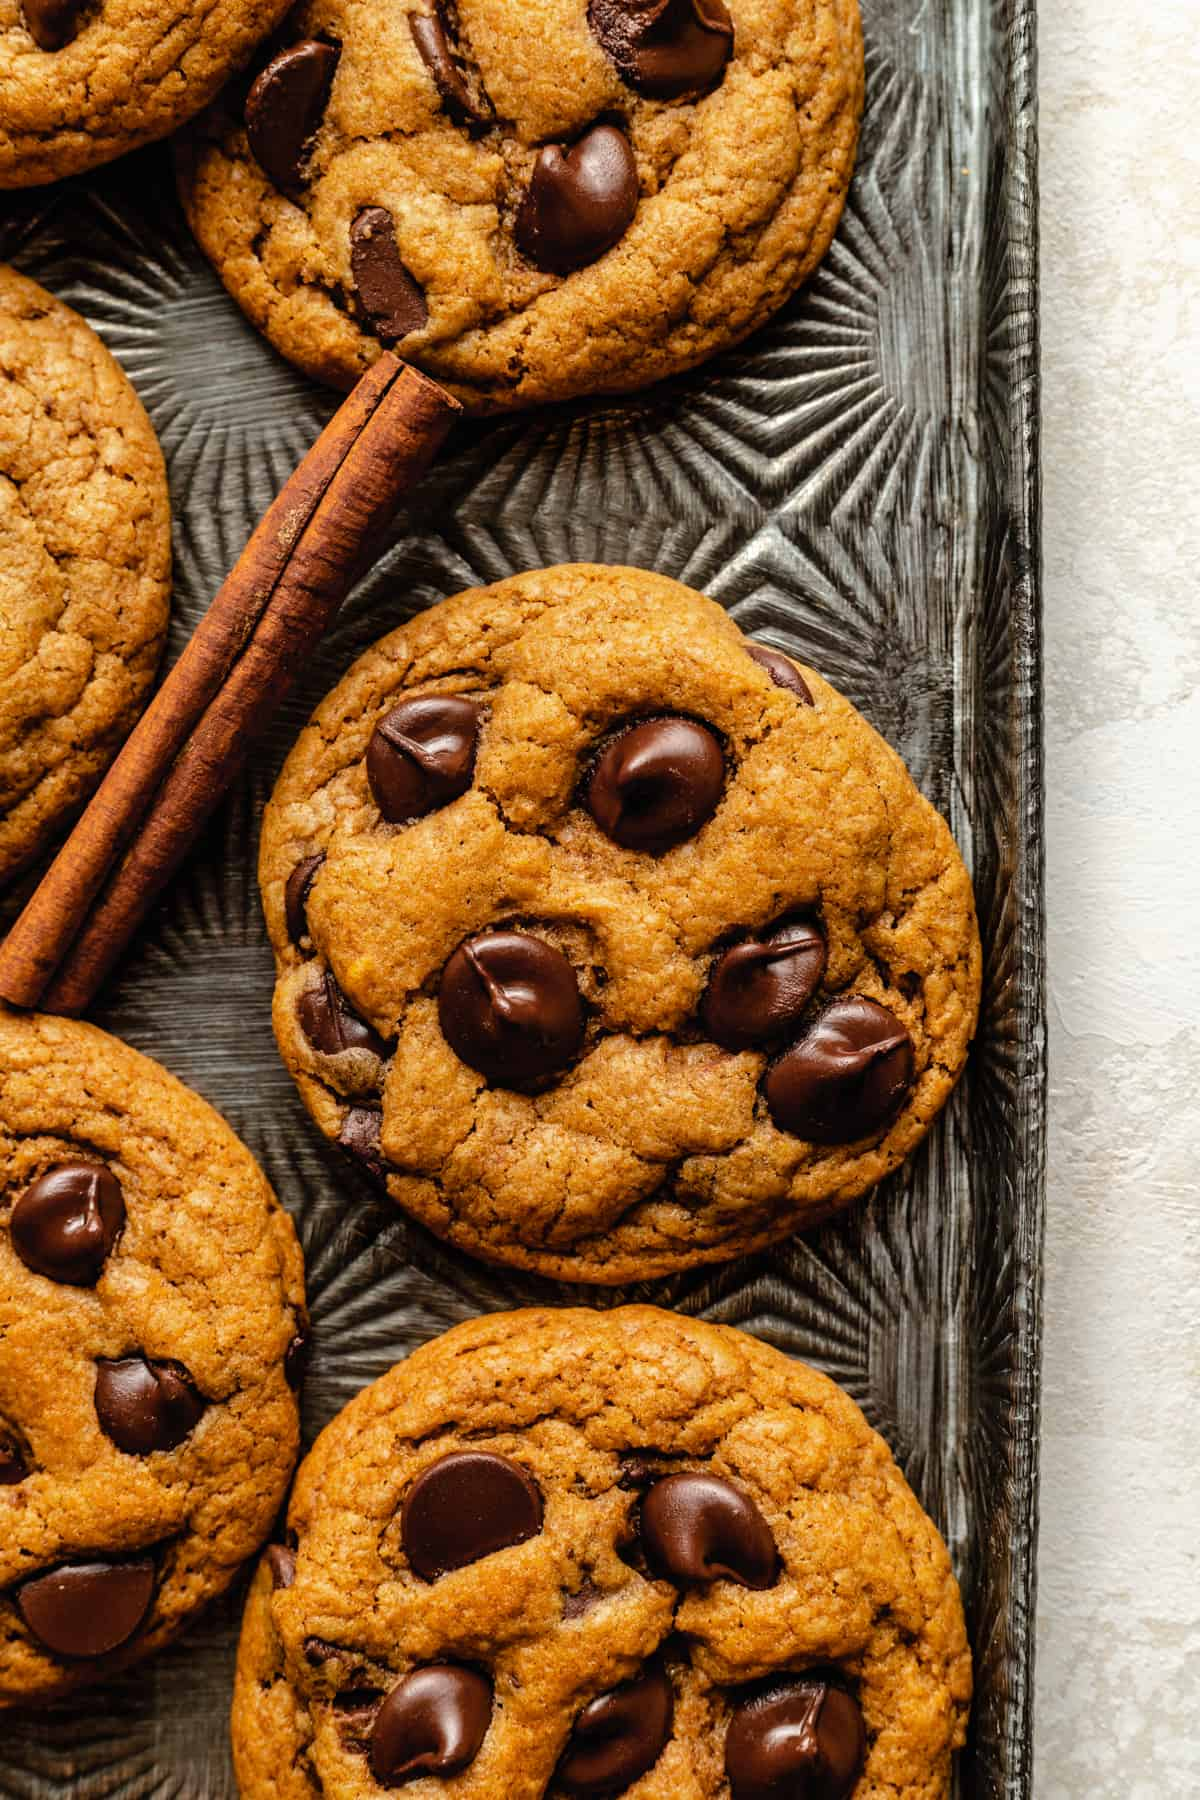 A close up of a tray of cookies with cinnamon sticks around.